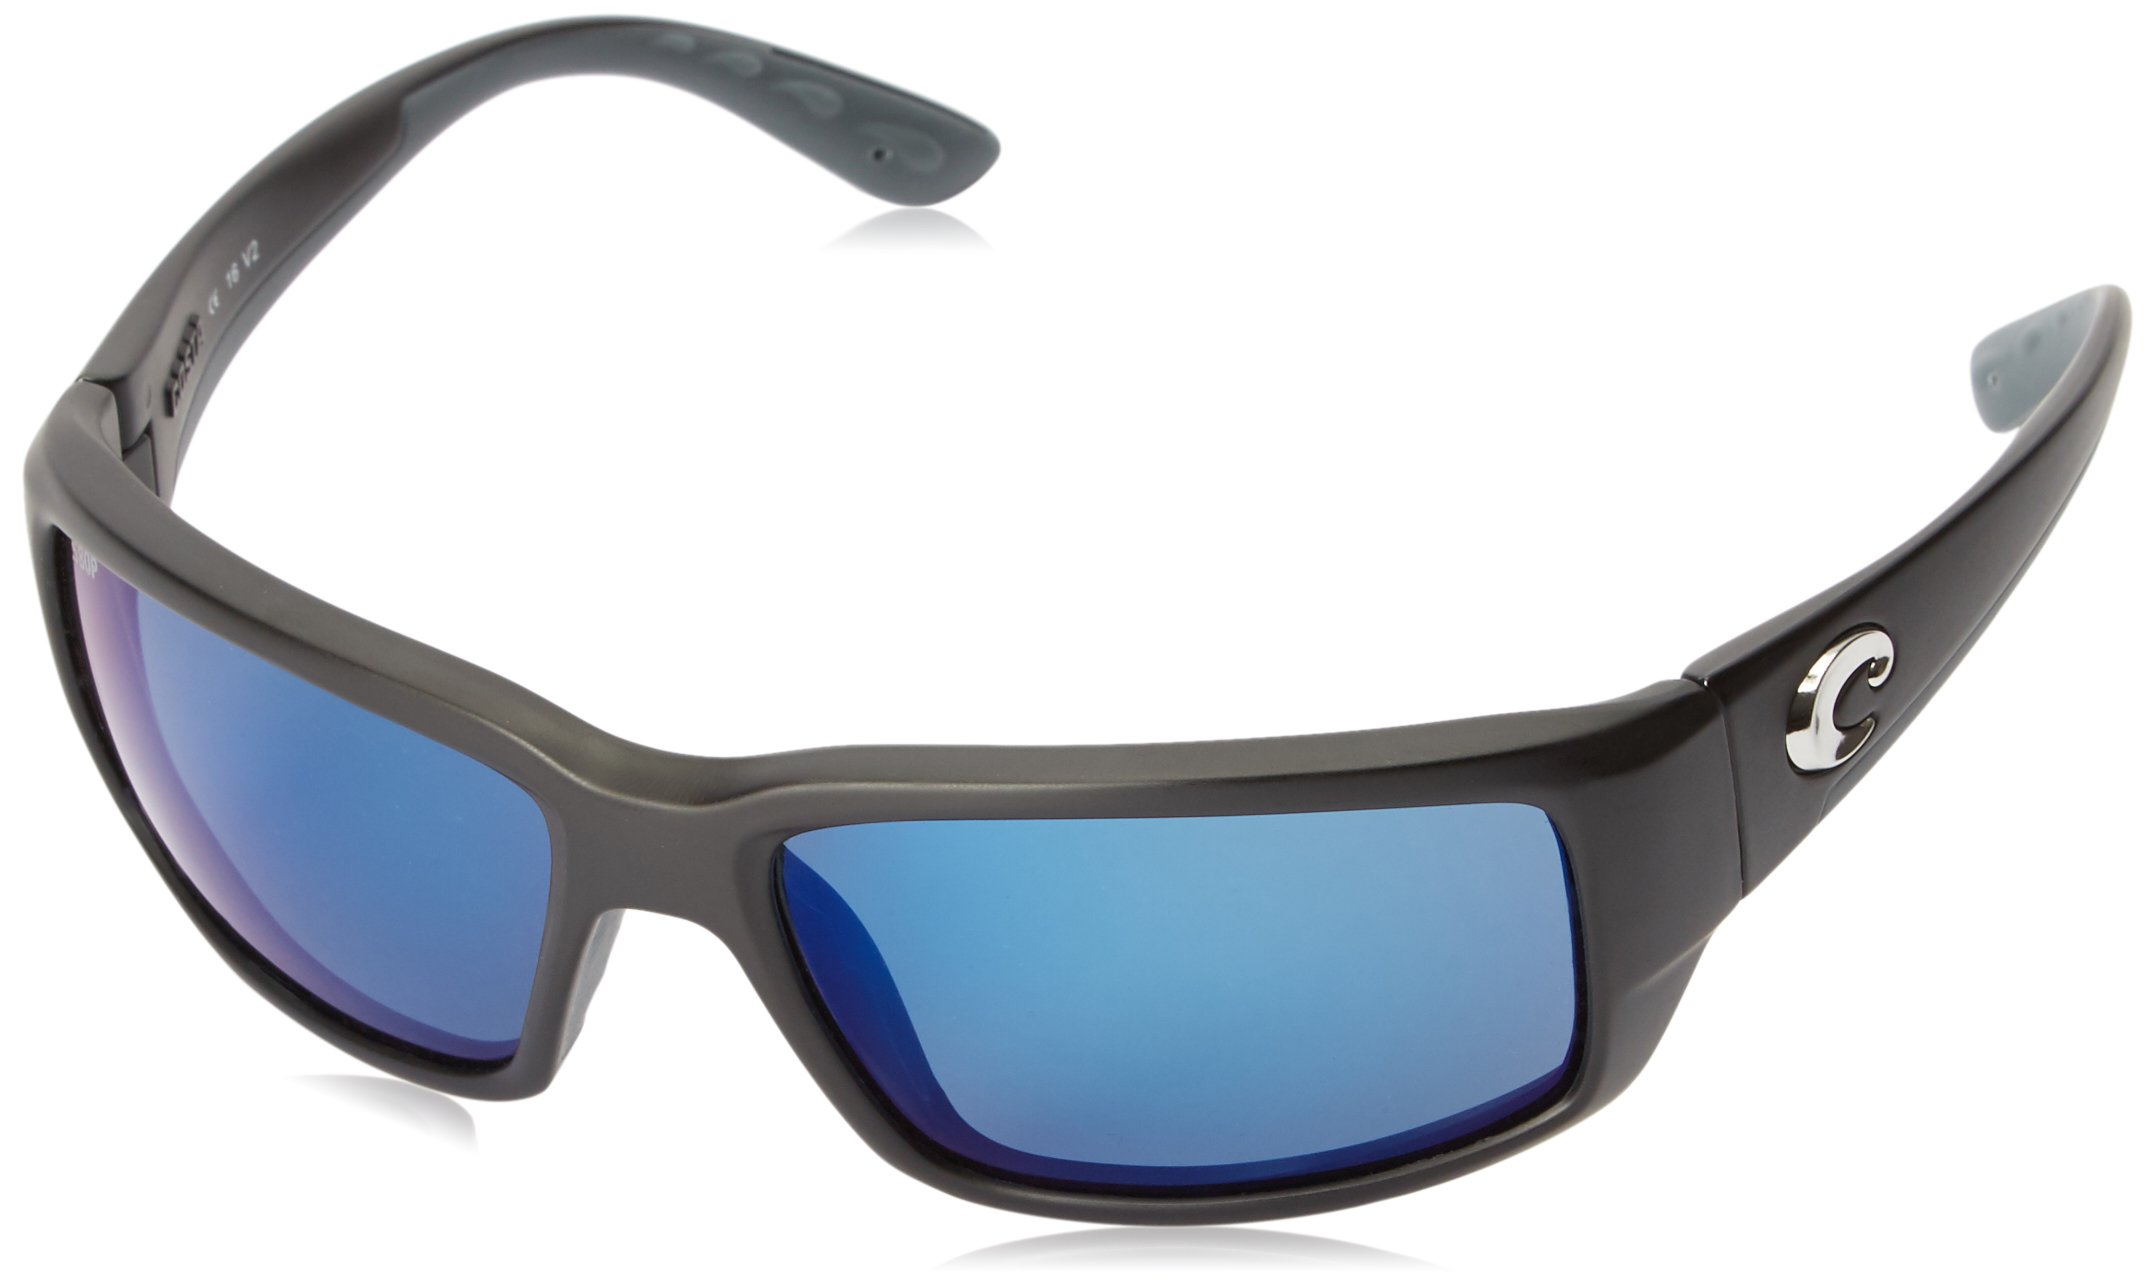 Costa Del Mar Fantail Sunglasses, Black, Blue Mirror 580 Plastic Lens by Costa Del Mar